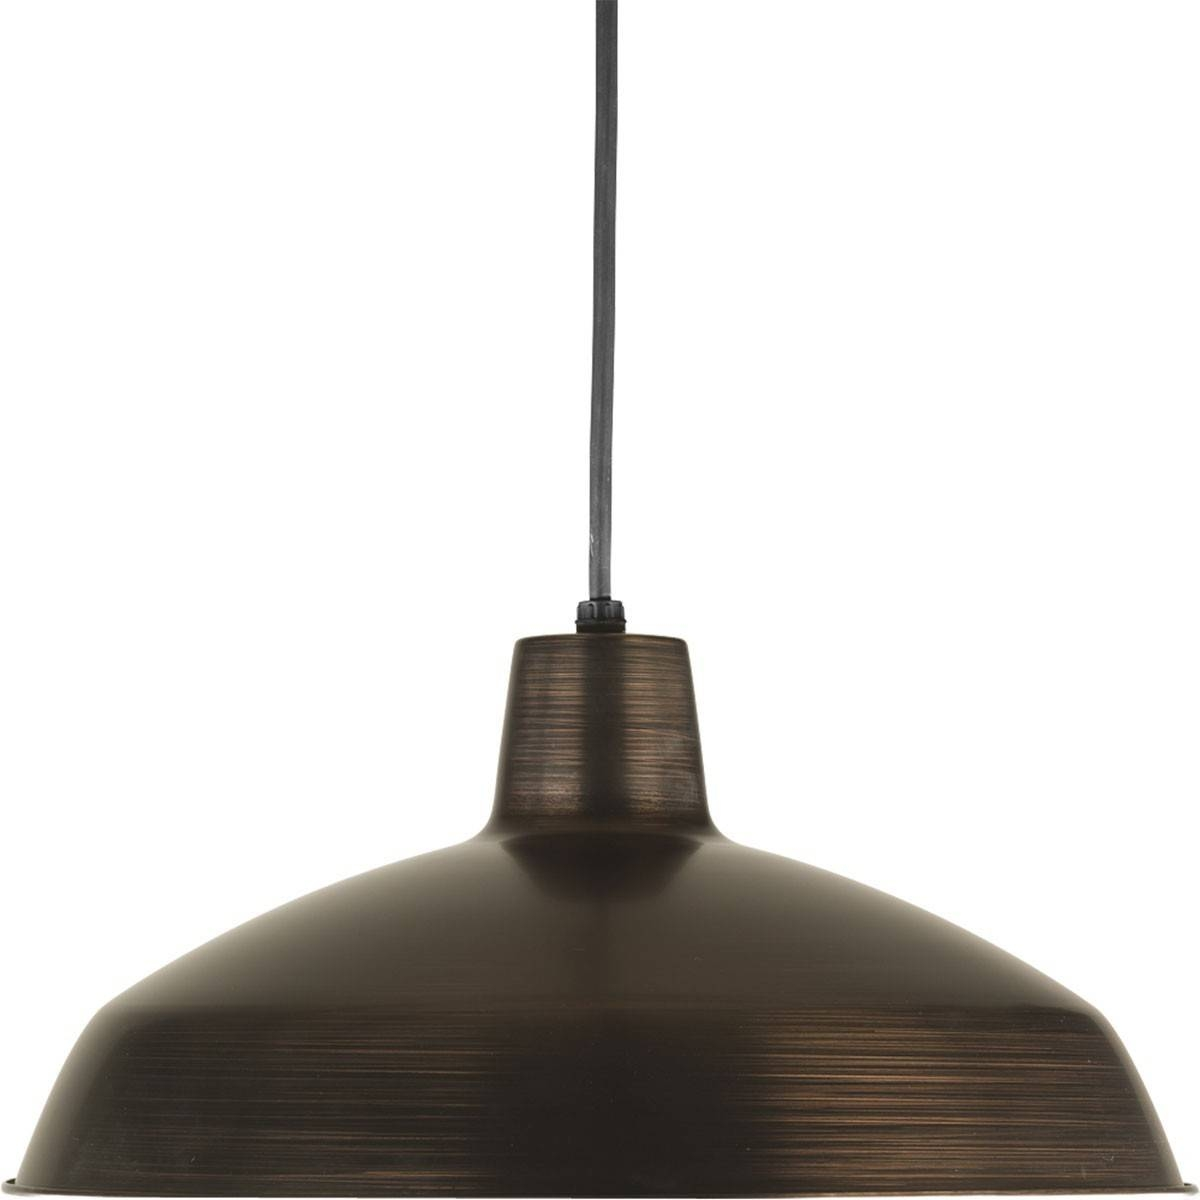 New Cheap Pendant Lighting 57 For Your Pink Pendant Light With Throughout Inexpensive Pendant Lights (View 13 of 15)